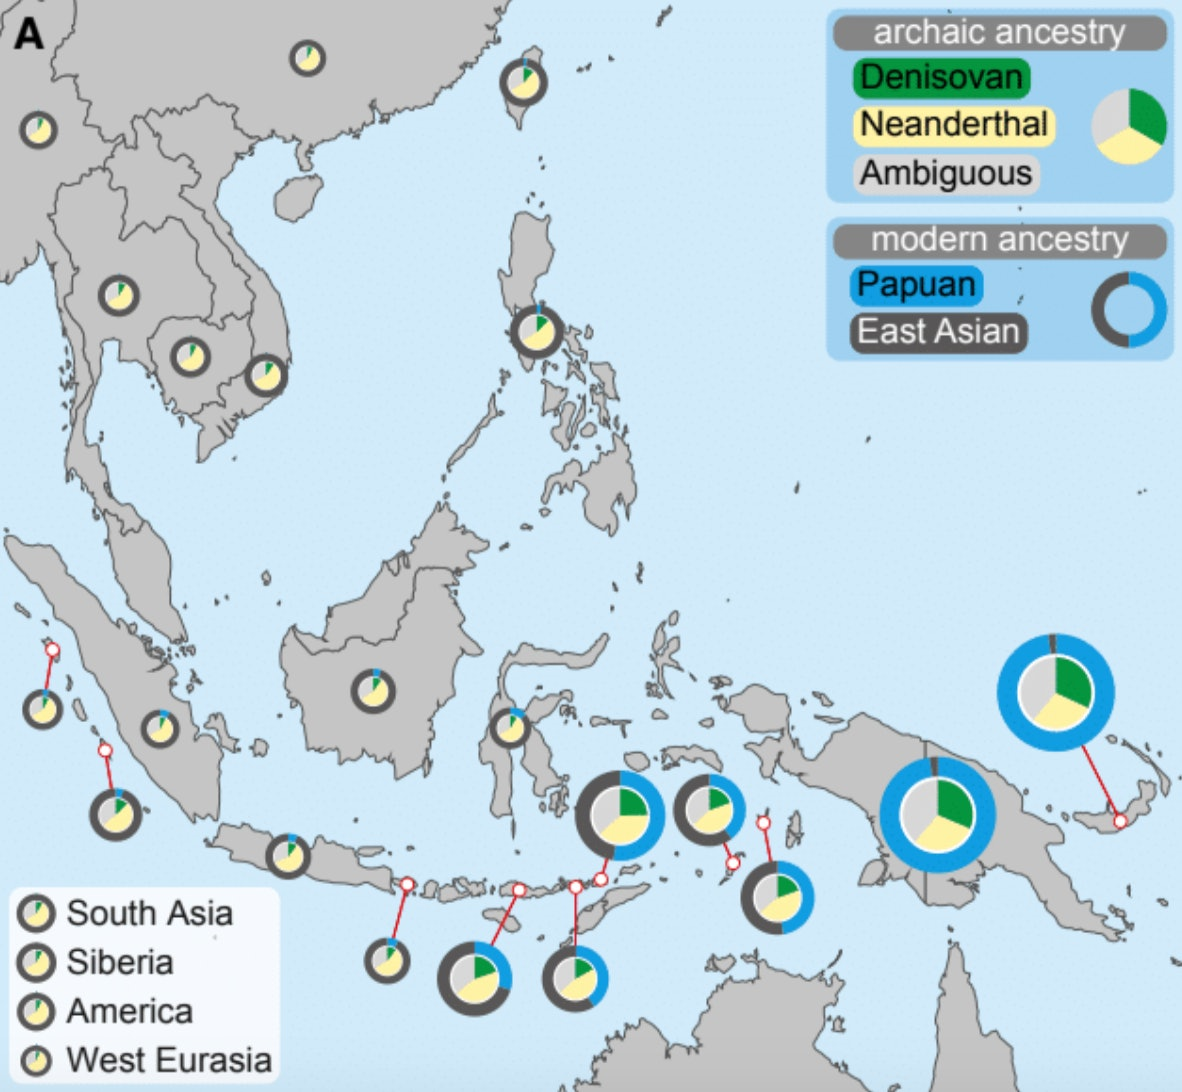 The sampling locations of the groups of living people involved in this study.